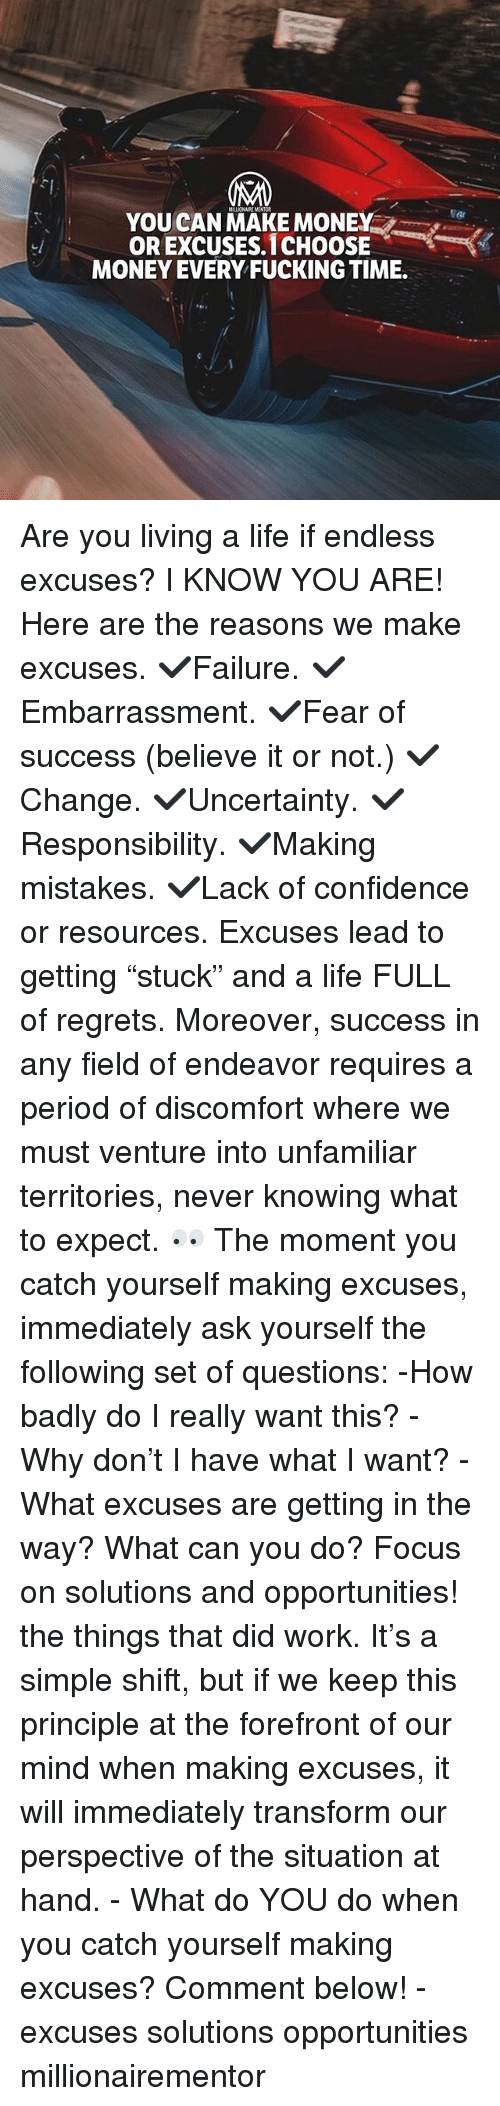 """Confidence, Fucking, and Life: YOU CAN MAKE MONEY  OR EXCUSES,ICHOOSE  MONEY EVERY FUCKING TIME.  MILLIONAIRE MENTOR Are you living a life if endless excuses? I KNOW YOU ARE! Here are the reasons we make excuses. ✔️Failure. ✔️Embarrassment. ✔️Fear of success (believe it or not.) ✔️Change. ✔️Uncertainty. ✔️Responsibility. ✔️Making mistakes. ✔️Lack of confidence or resources. Excuses lead to getting """"stuck"""" and a life FULL of regrets. Moreover, success in any field of endeavor requires a period of discomfort where we must venture into unfamiliar territories, never knowing what to expect. 👀 The moment you catch yourself making excuses, immediately ask yourself the following set of questions: -How badly do I really want this? -Why don't I have what I want? -What excuses are getting in the way? What can you do? Focus on solutions and opportunities! the things that did work. It's a simple shift, but if we keep this principle at the forefront of our mind when making excuses, it will immediately transform our perspective of the situation at hand. - What do YOU do when you catch yourself making excuses? Comment below! - excuses solutions opportunities millionairementor"""